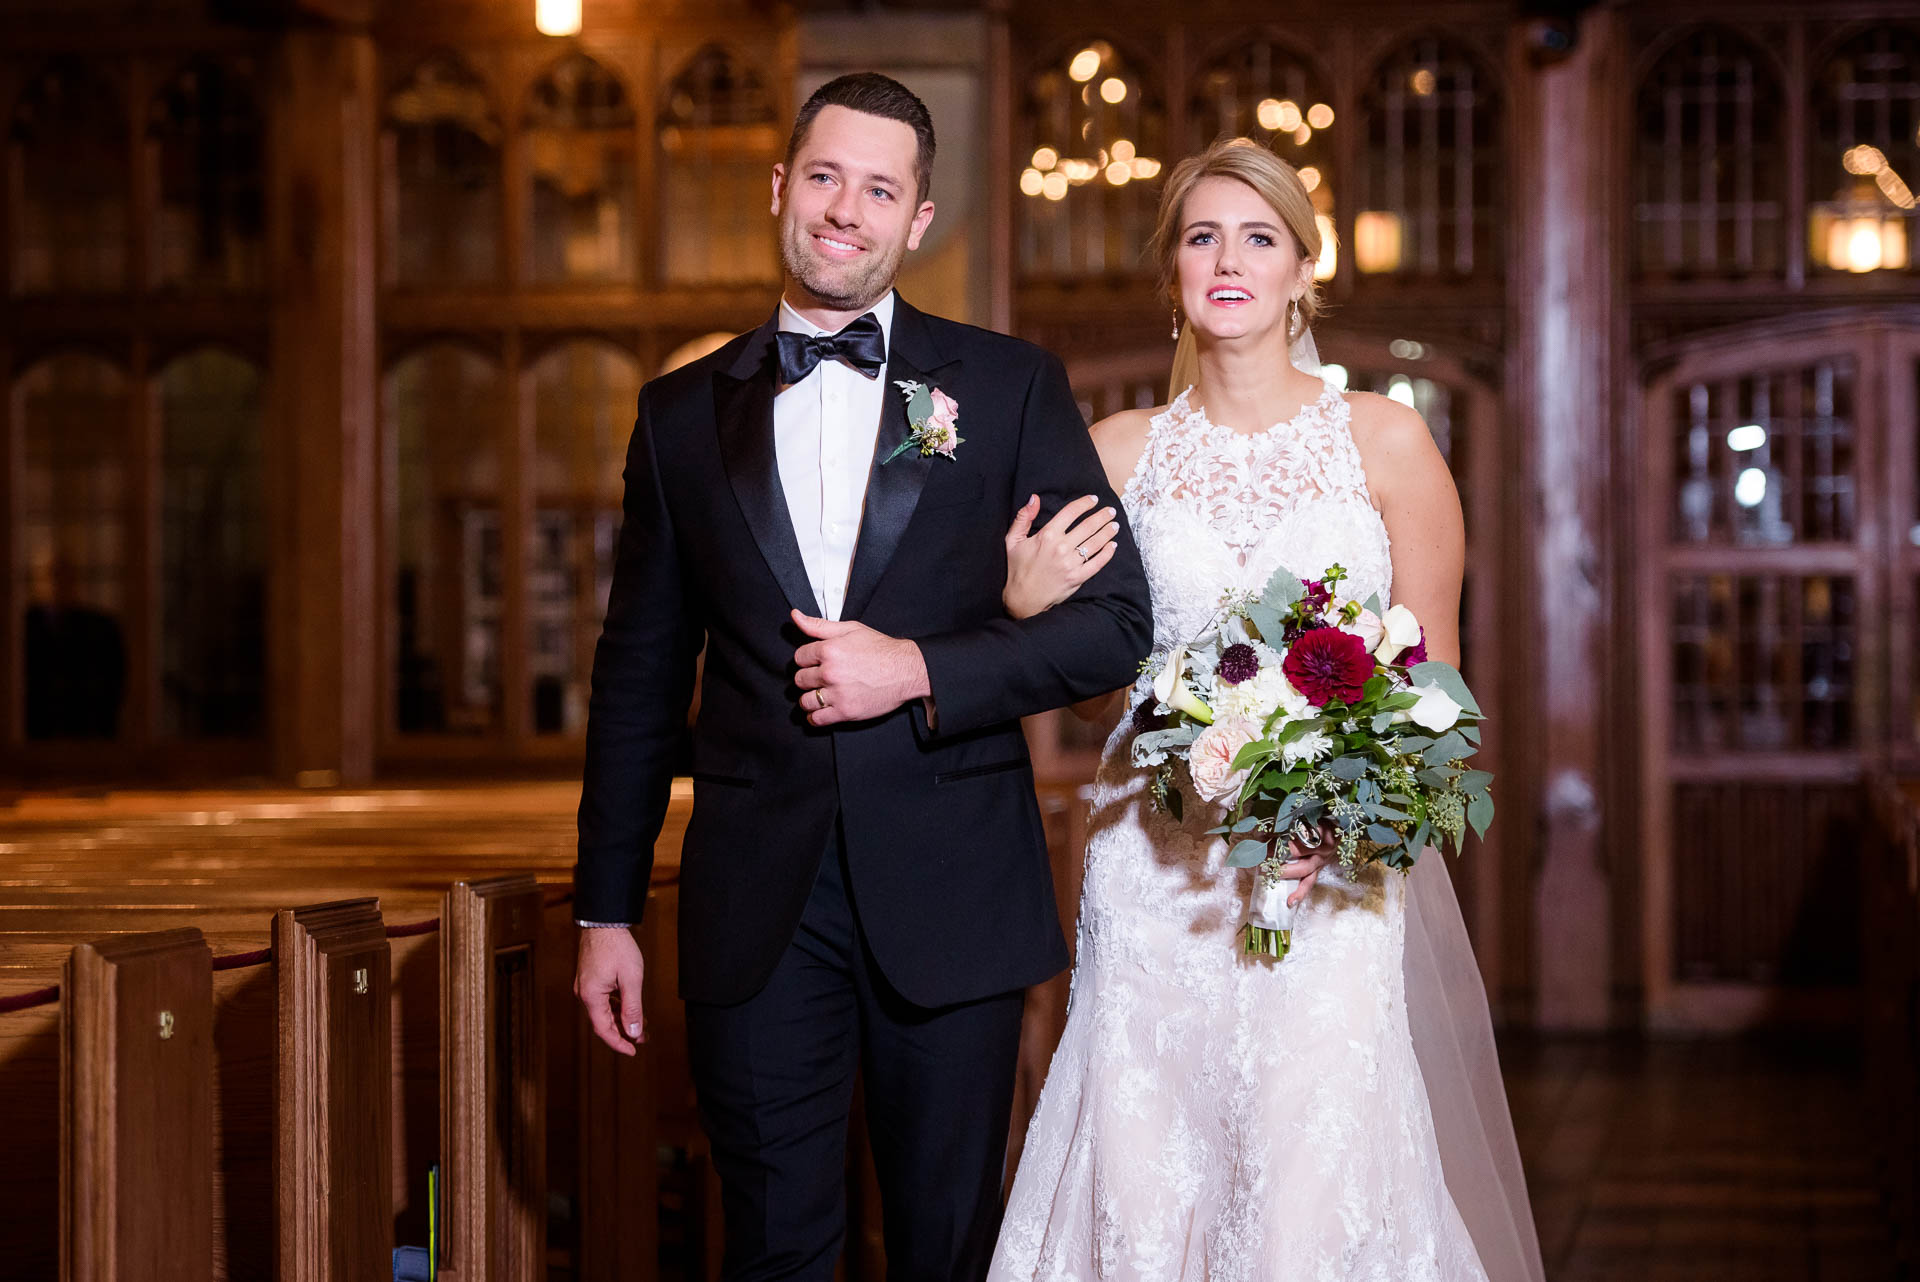 Brother and bride walk down the aisle during a wedding ceremony at Fourth Presbyterian Church in Chicago.